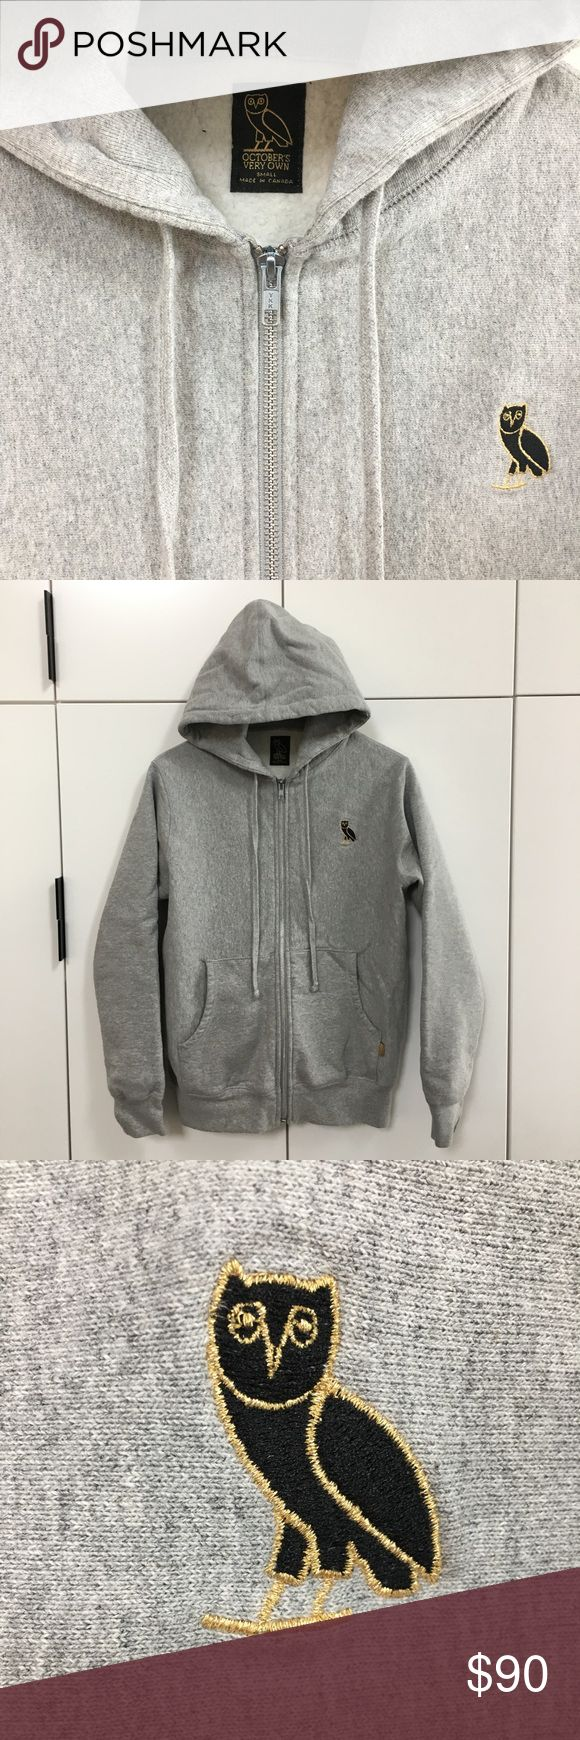 """OVO (Drake) New logo zip hoodie - Men's SMALL Authentic OVO """"October's Very Own"""" by Drake. Men's Small. Hooded full zip sweatshirt. Never worn. New condition. Purchased at the OVO store in Los Angeles, CA. OVO - October's Very Own Shirts Sweatshirts & Hoodies"""